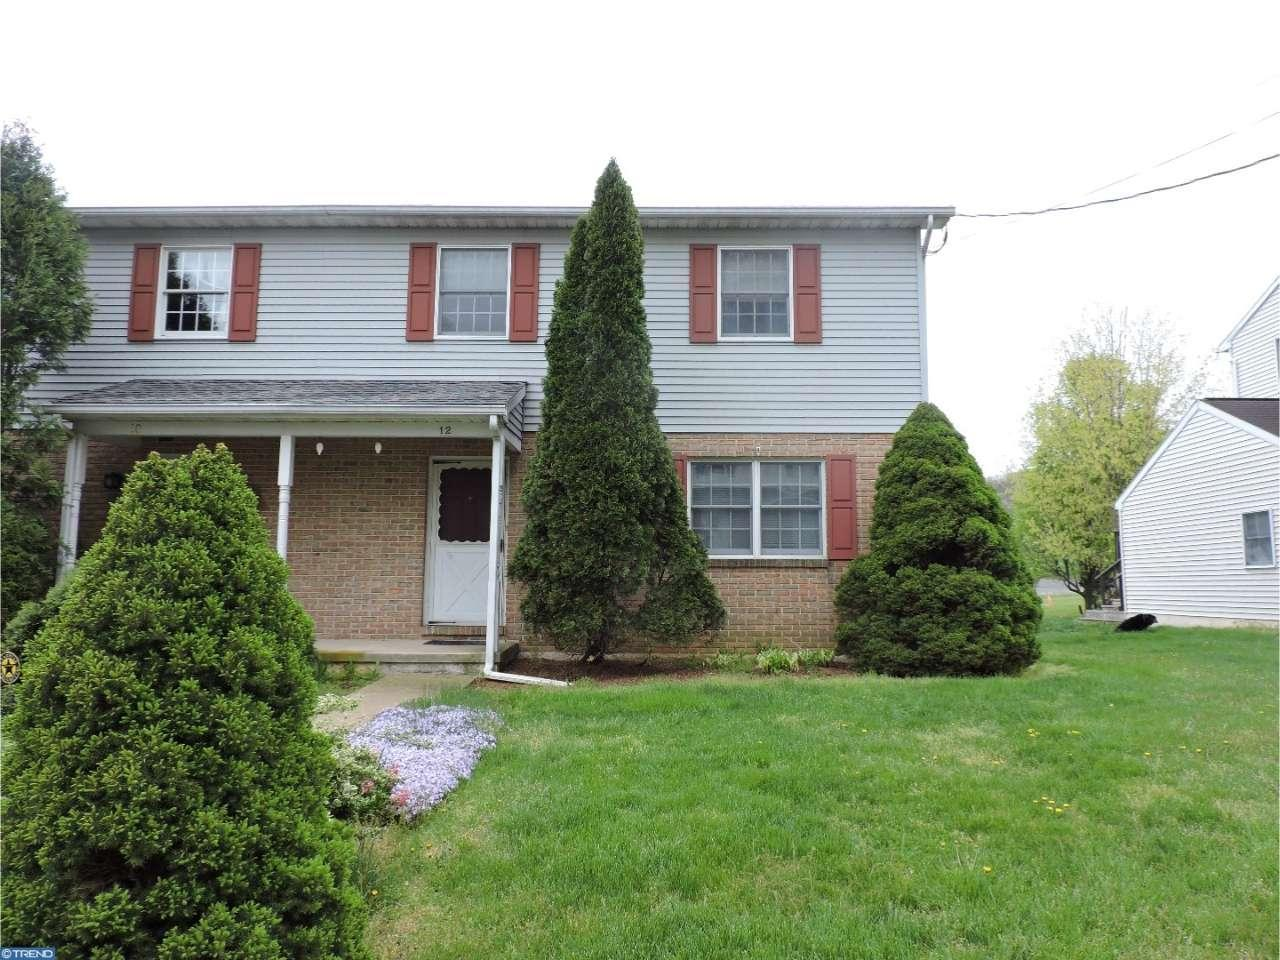 bechtelsville dating site This home is located at 1014 route 100 bechtelsville, pa 19505 us and has been listed on homescom since 17 february 2018 and is currently priced at $124,900.